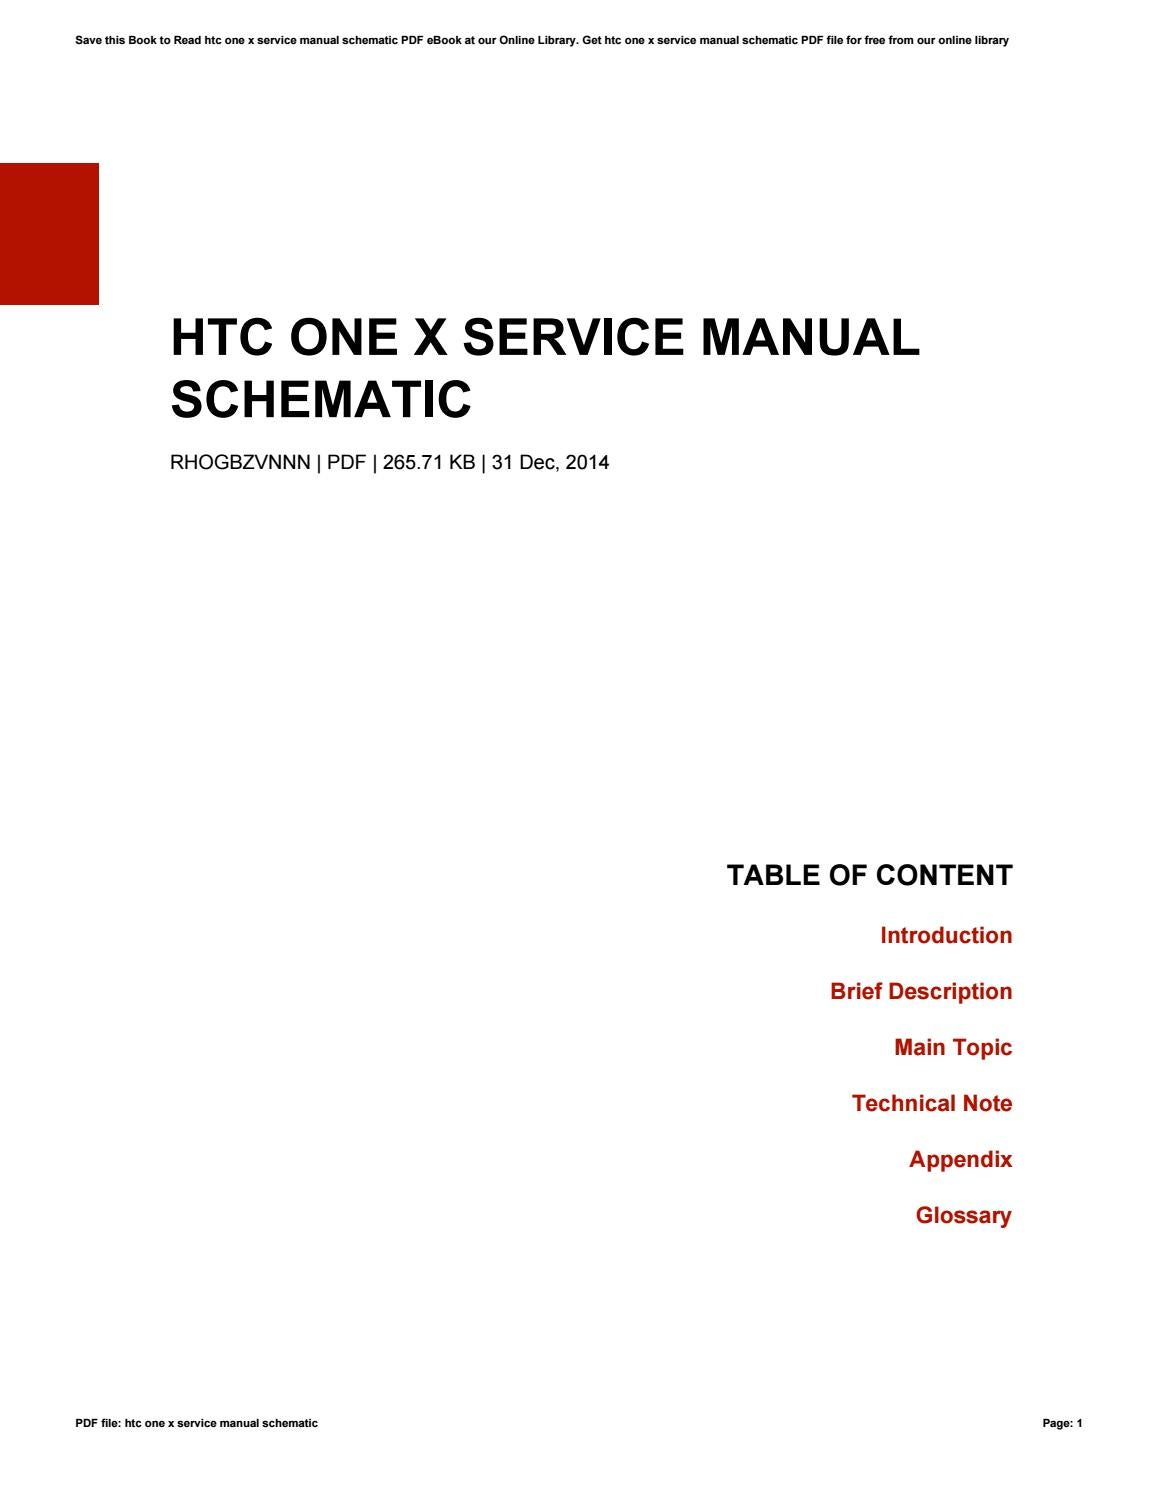 htc one x service manual schematic by uacro18 - issuu  issuu